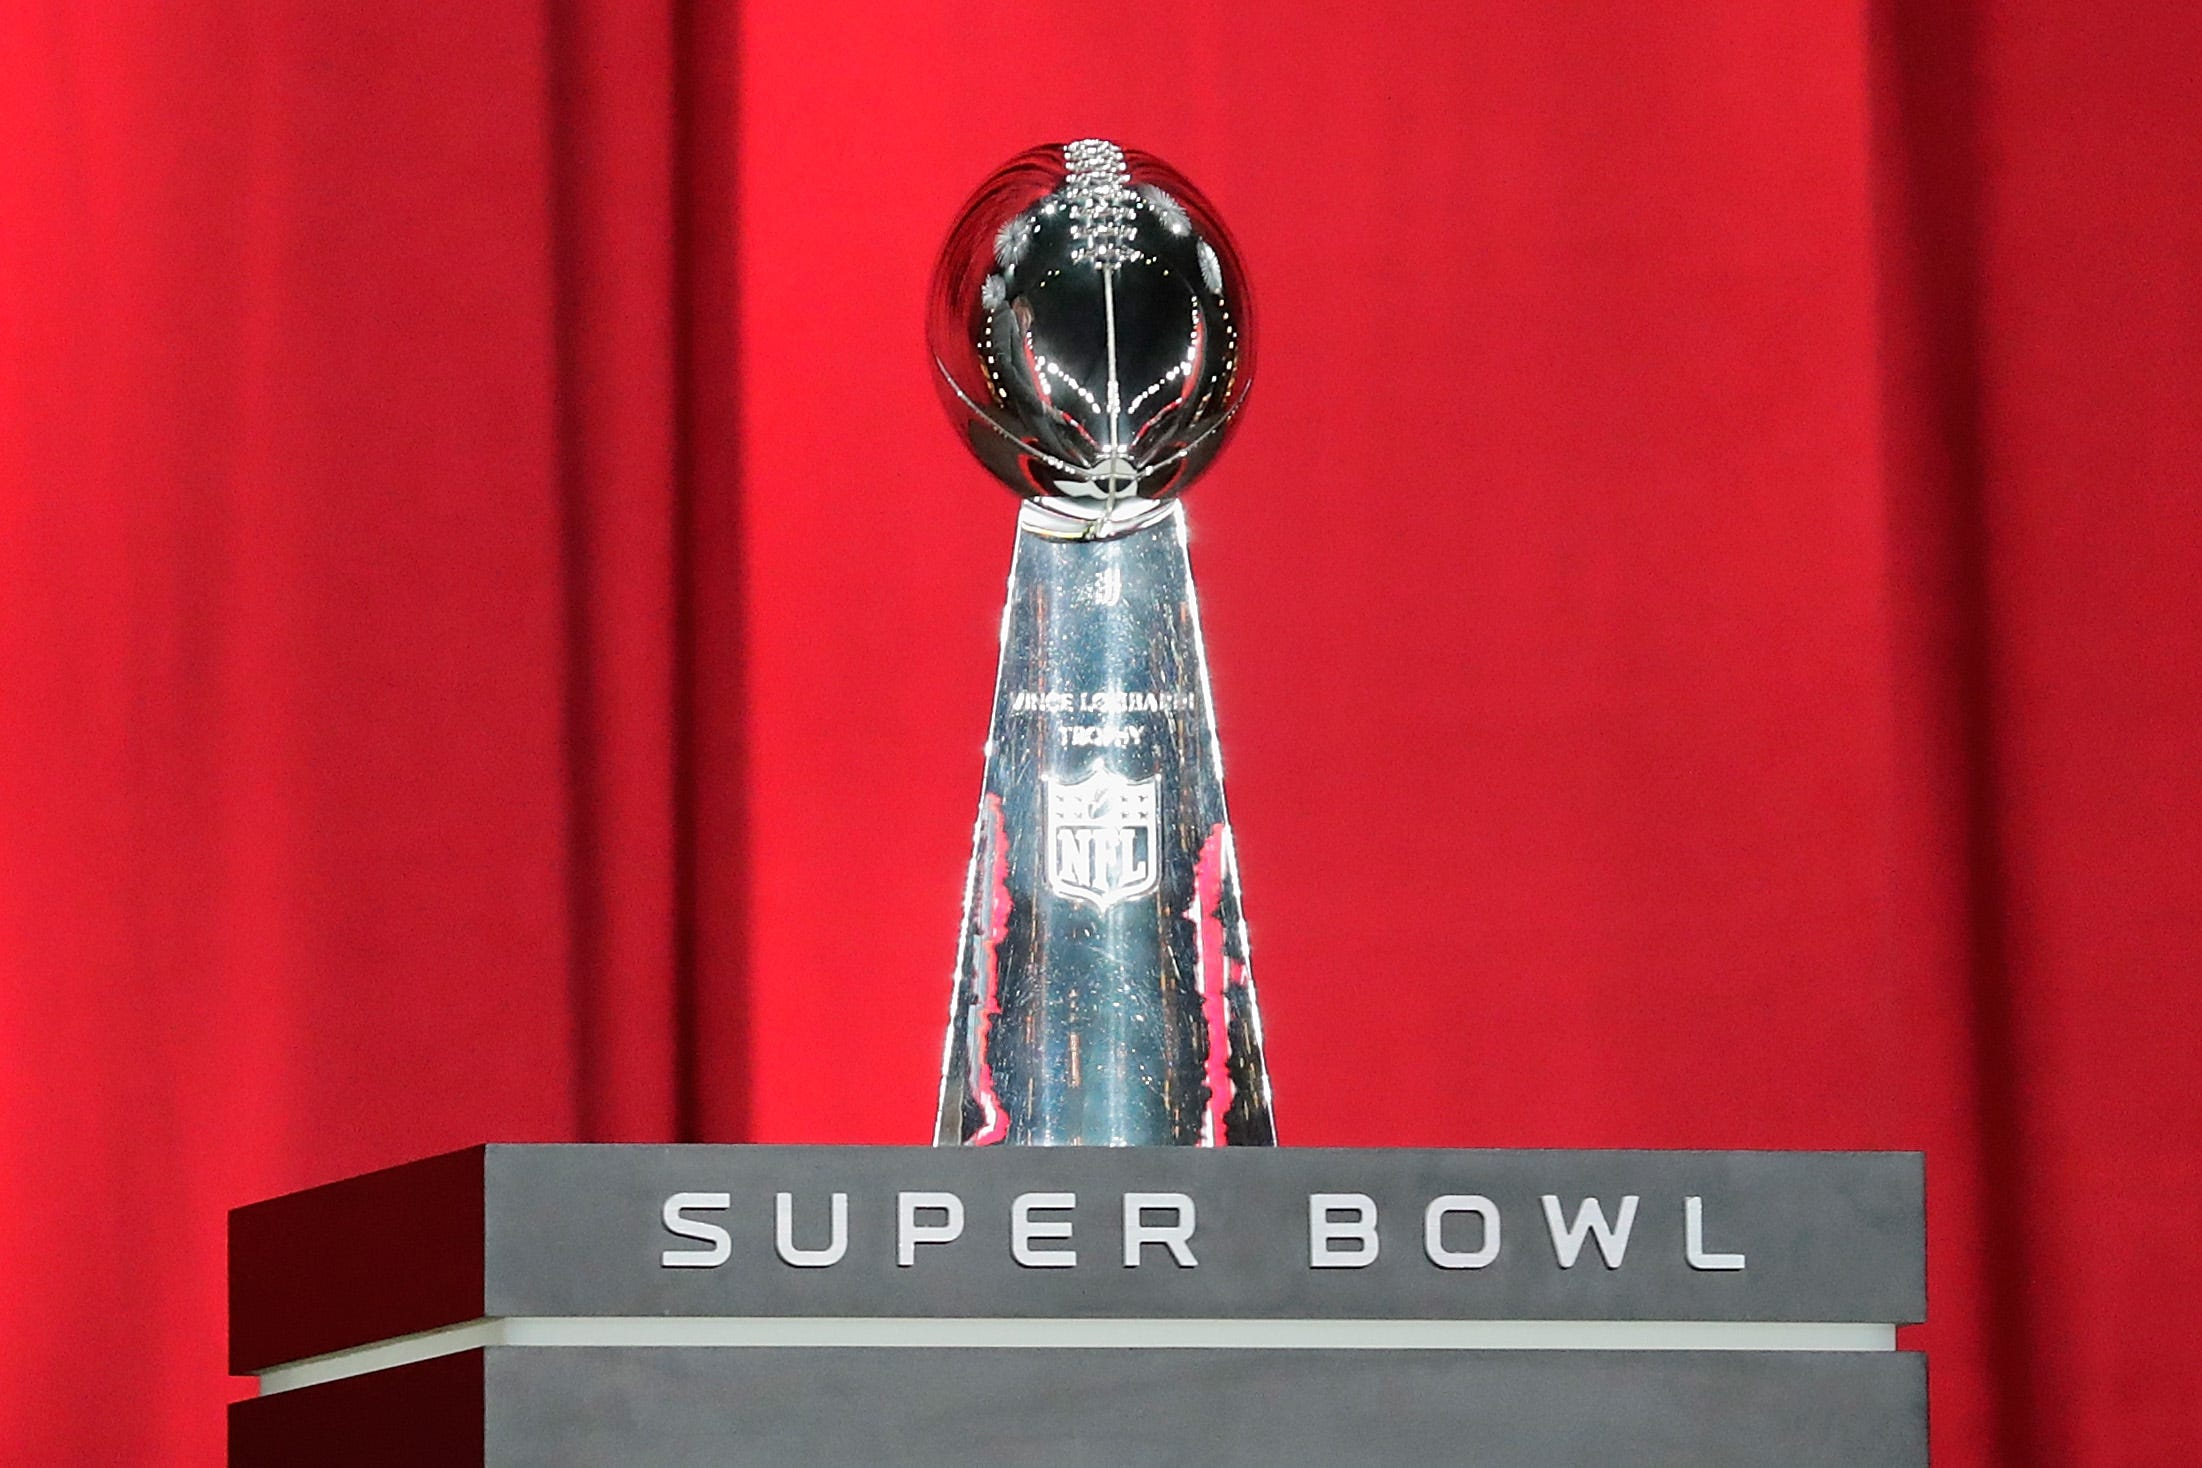 Super Bowl LIV 2020 Complete Guide: Matchups, TV Info and Notable Commercials